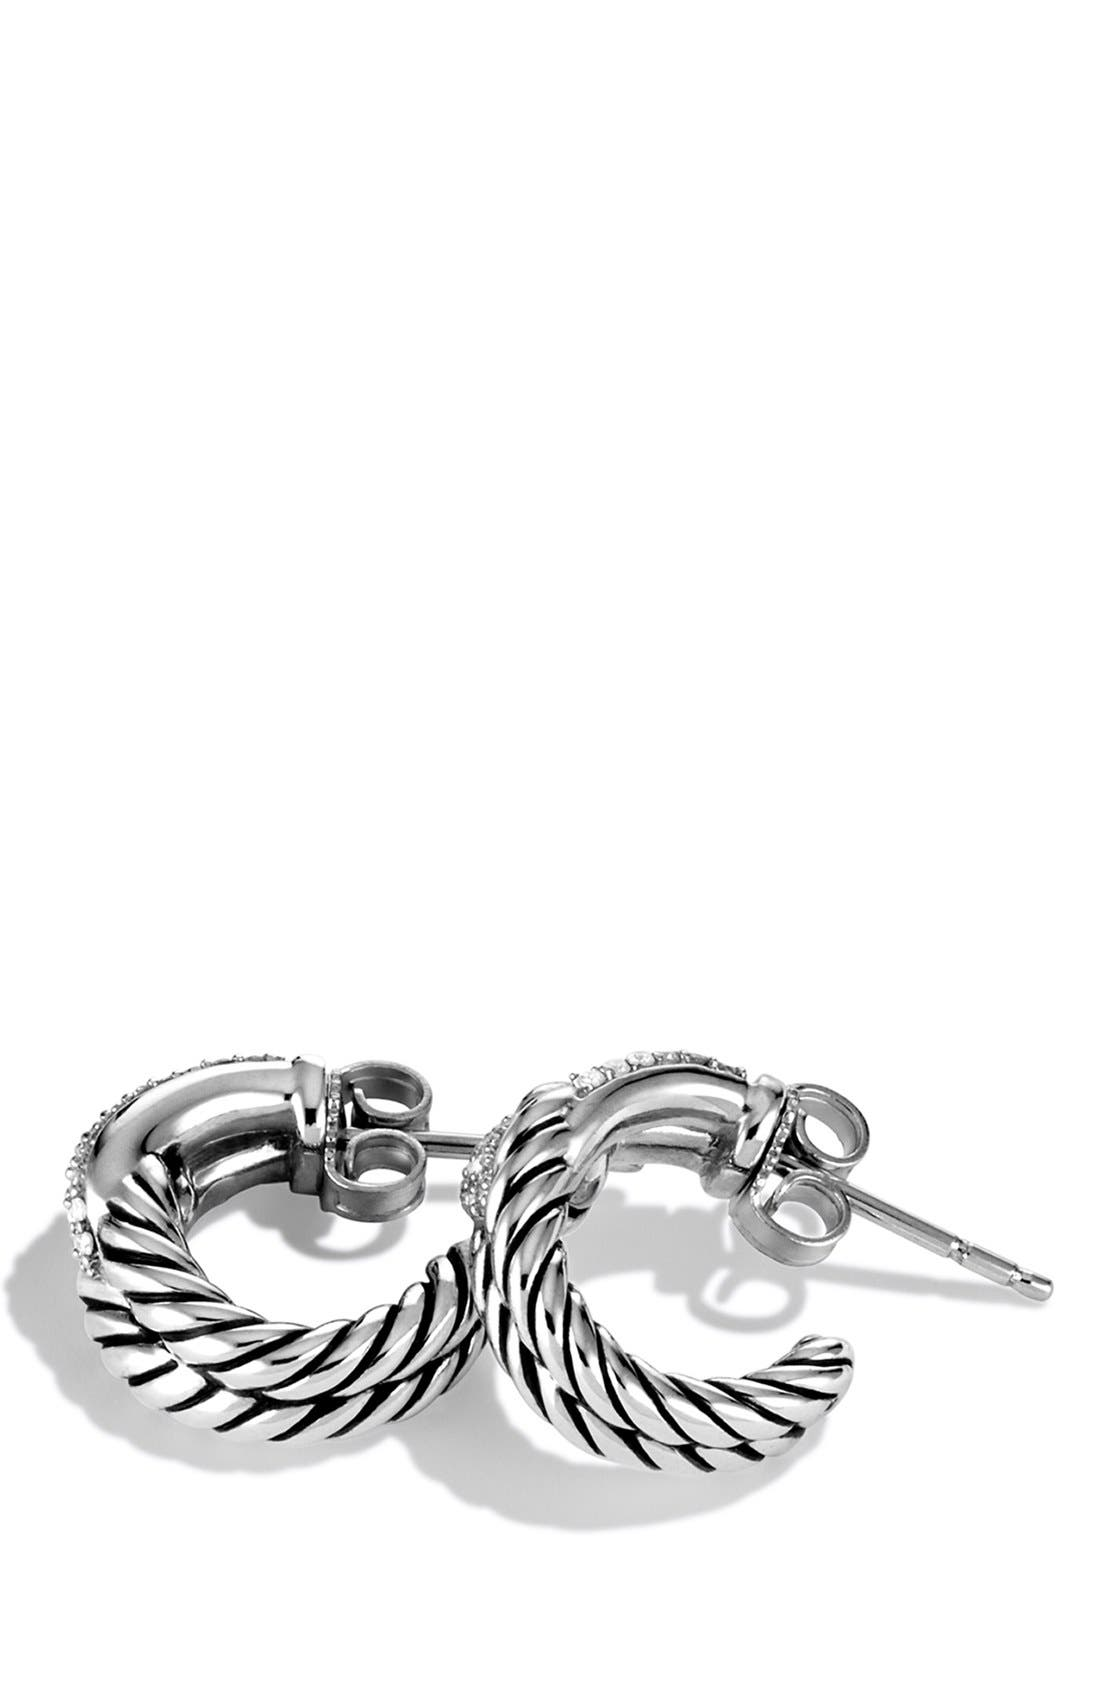 Alternate Image 2  - David Yurman 'Labyrinth' Single Loop Earrings with Diamonds